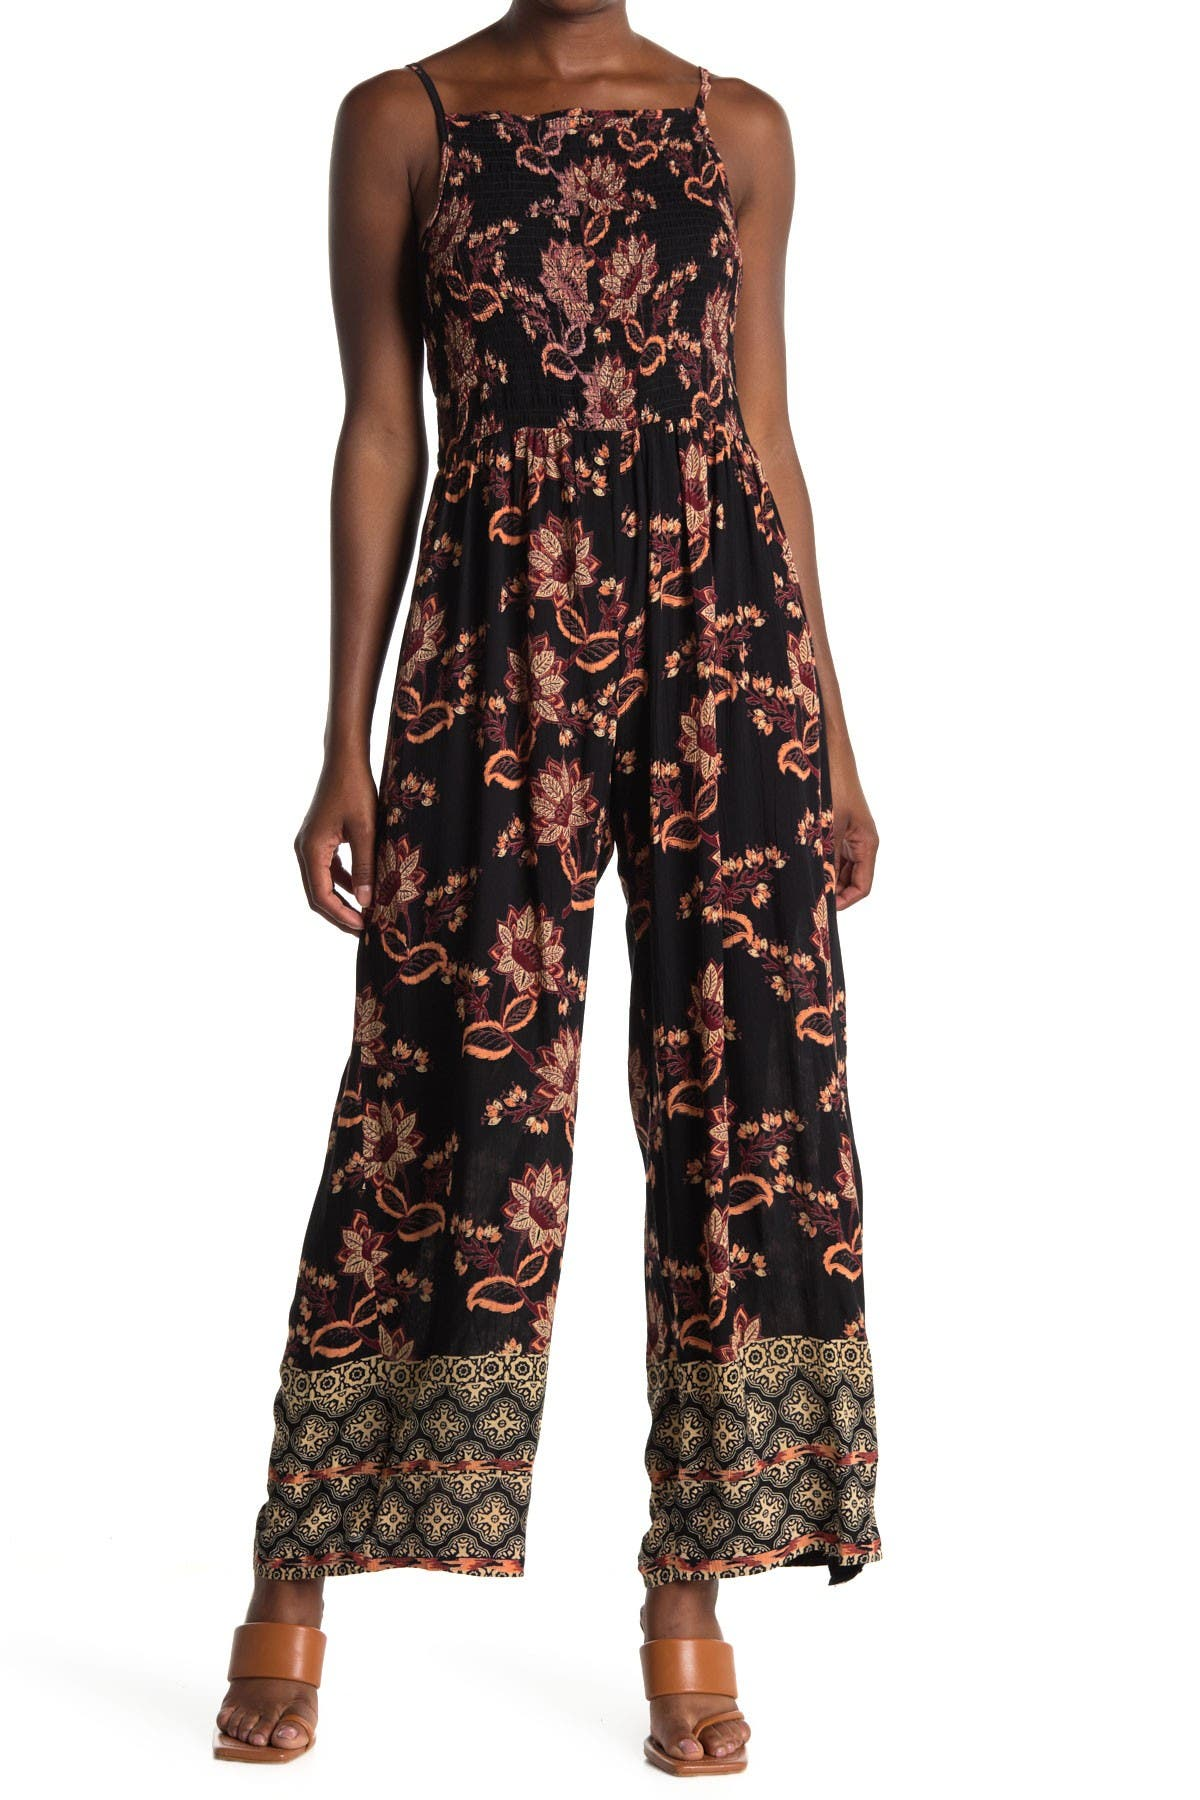 Image of Angie Floral Smocked Bodice Jumpsuit